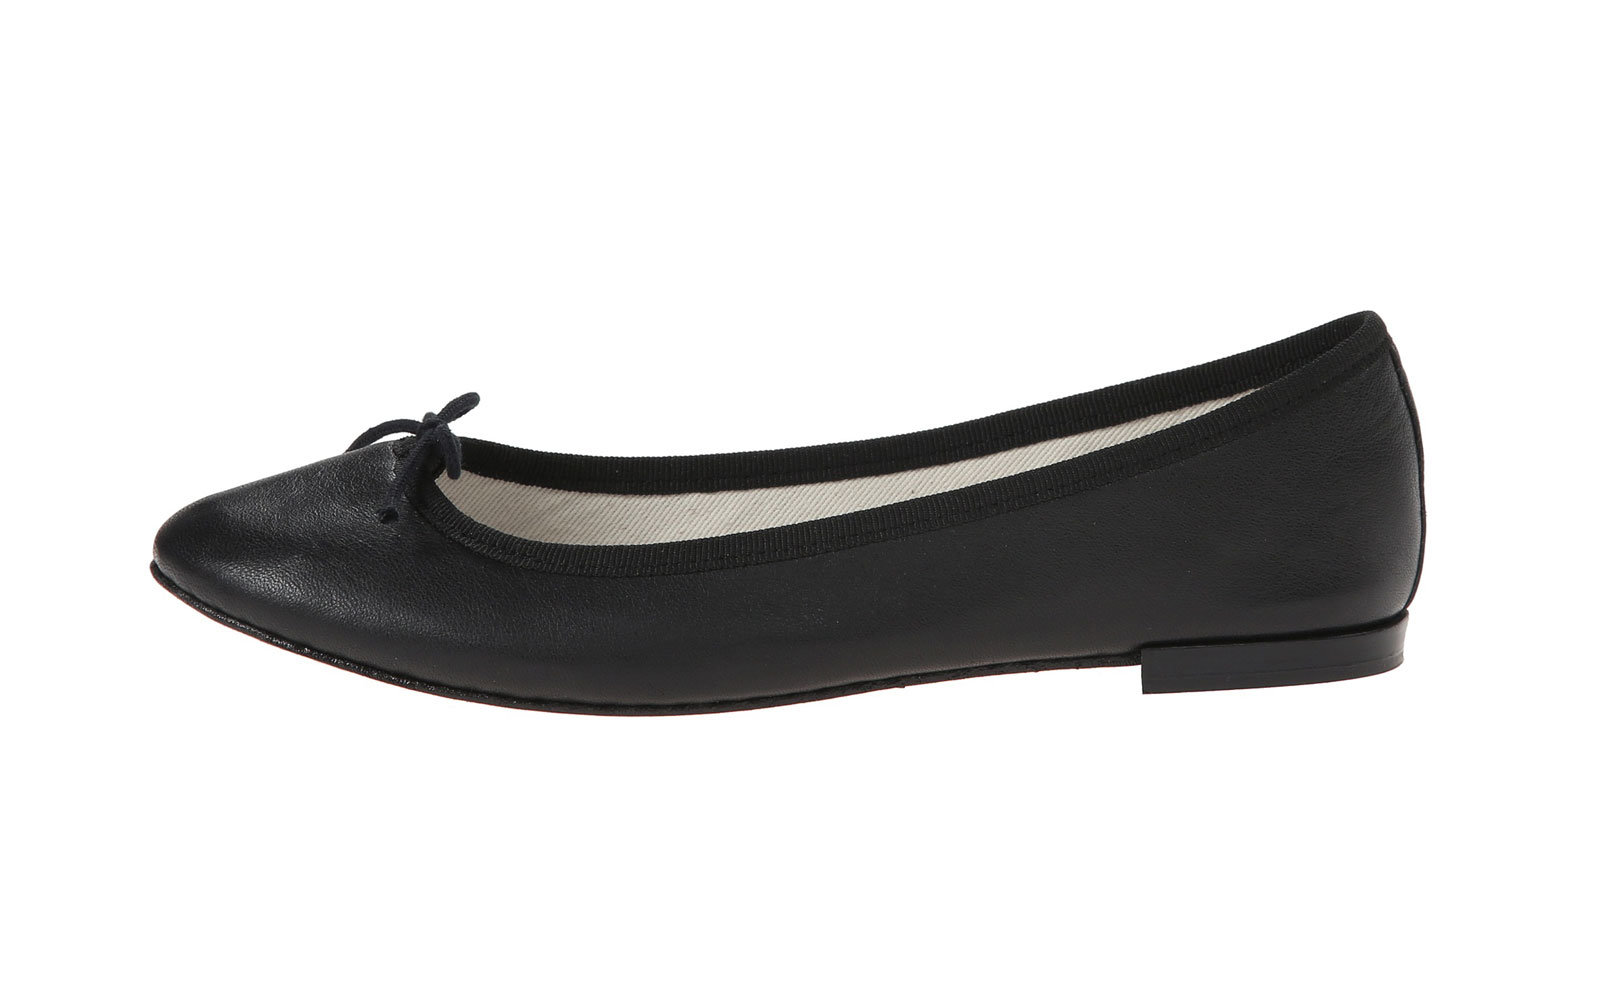 Best Walking Shoes for Travel: Repetto